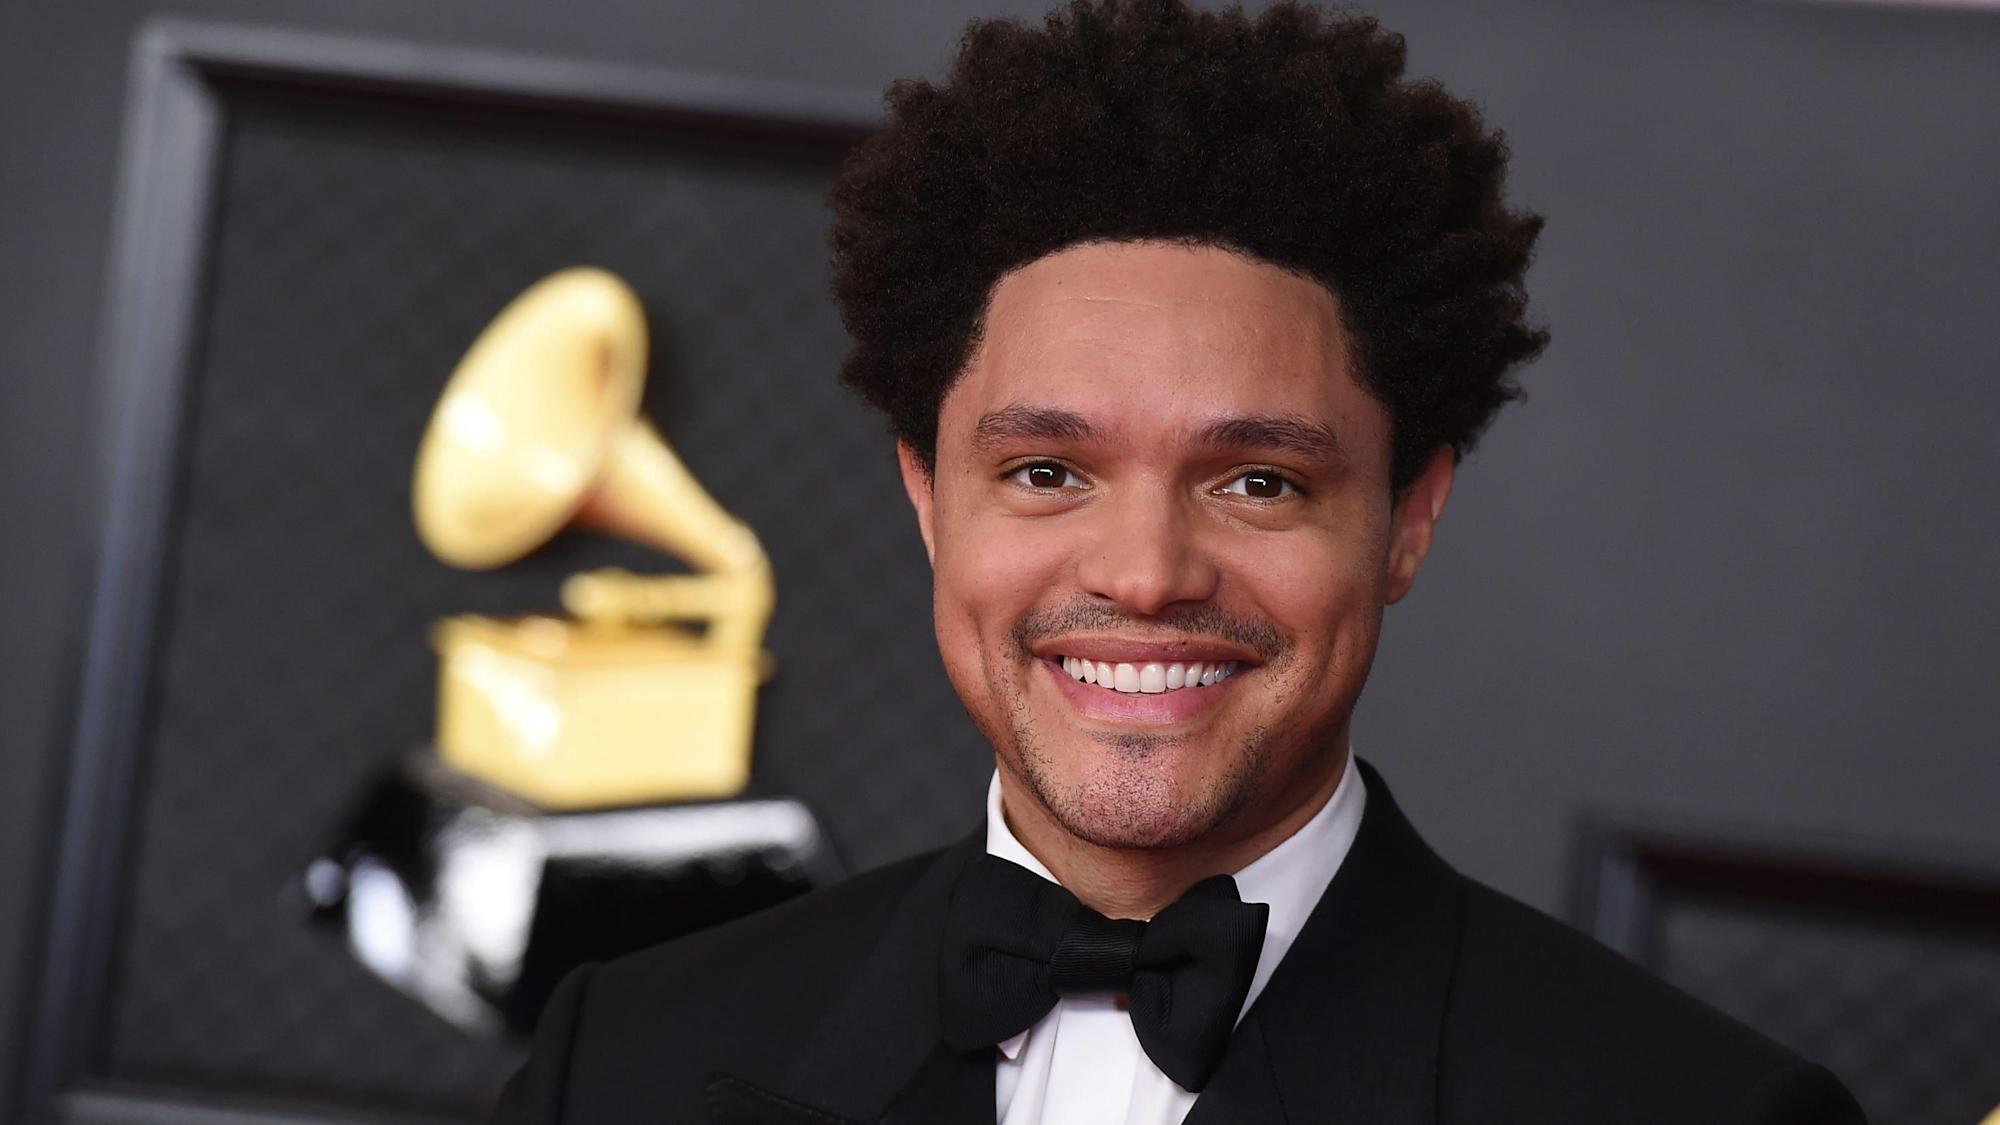 Trevor Noah opens Grammys with joke about royal family